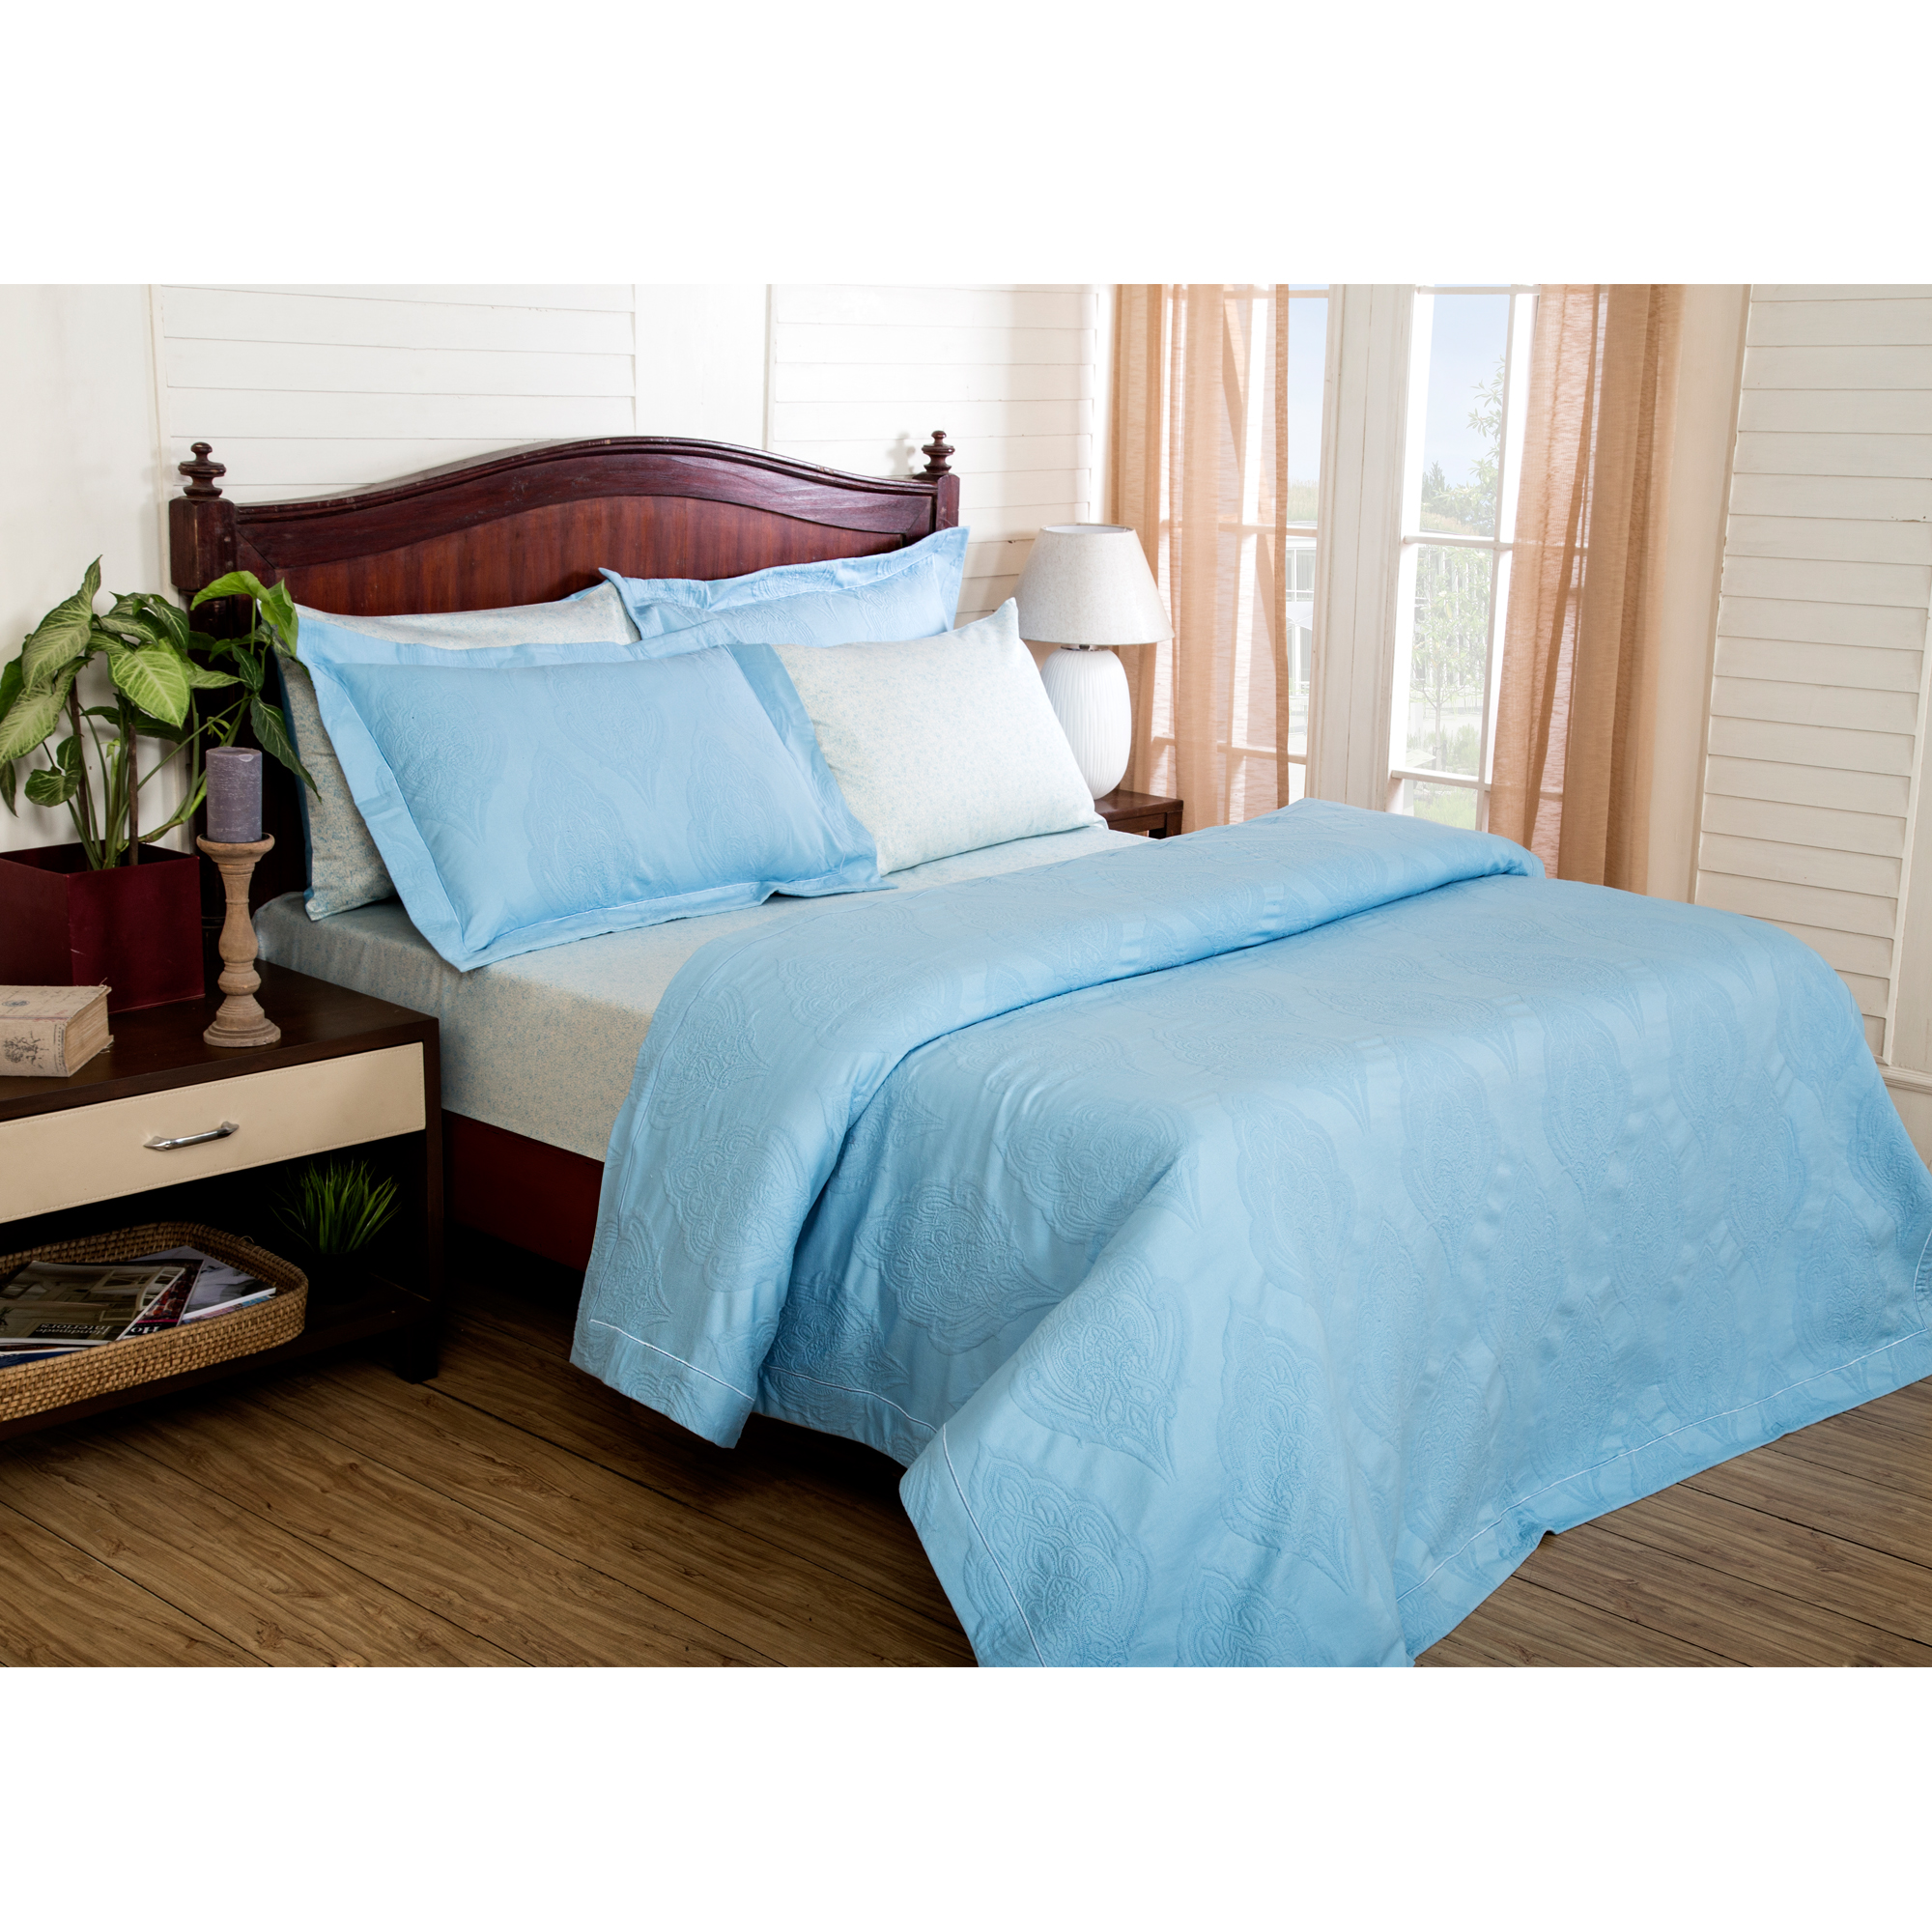 115 GSM Matlesse Sapphire Cotton King Size  Bed Cover in Blue Colour by Maspar